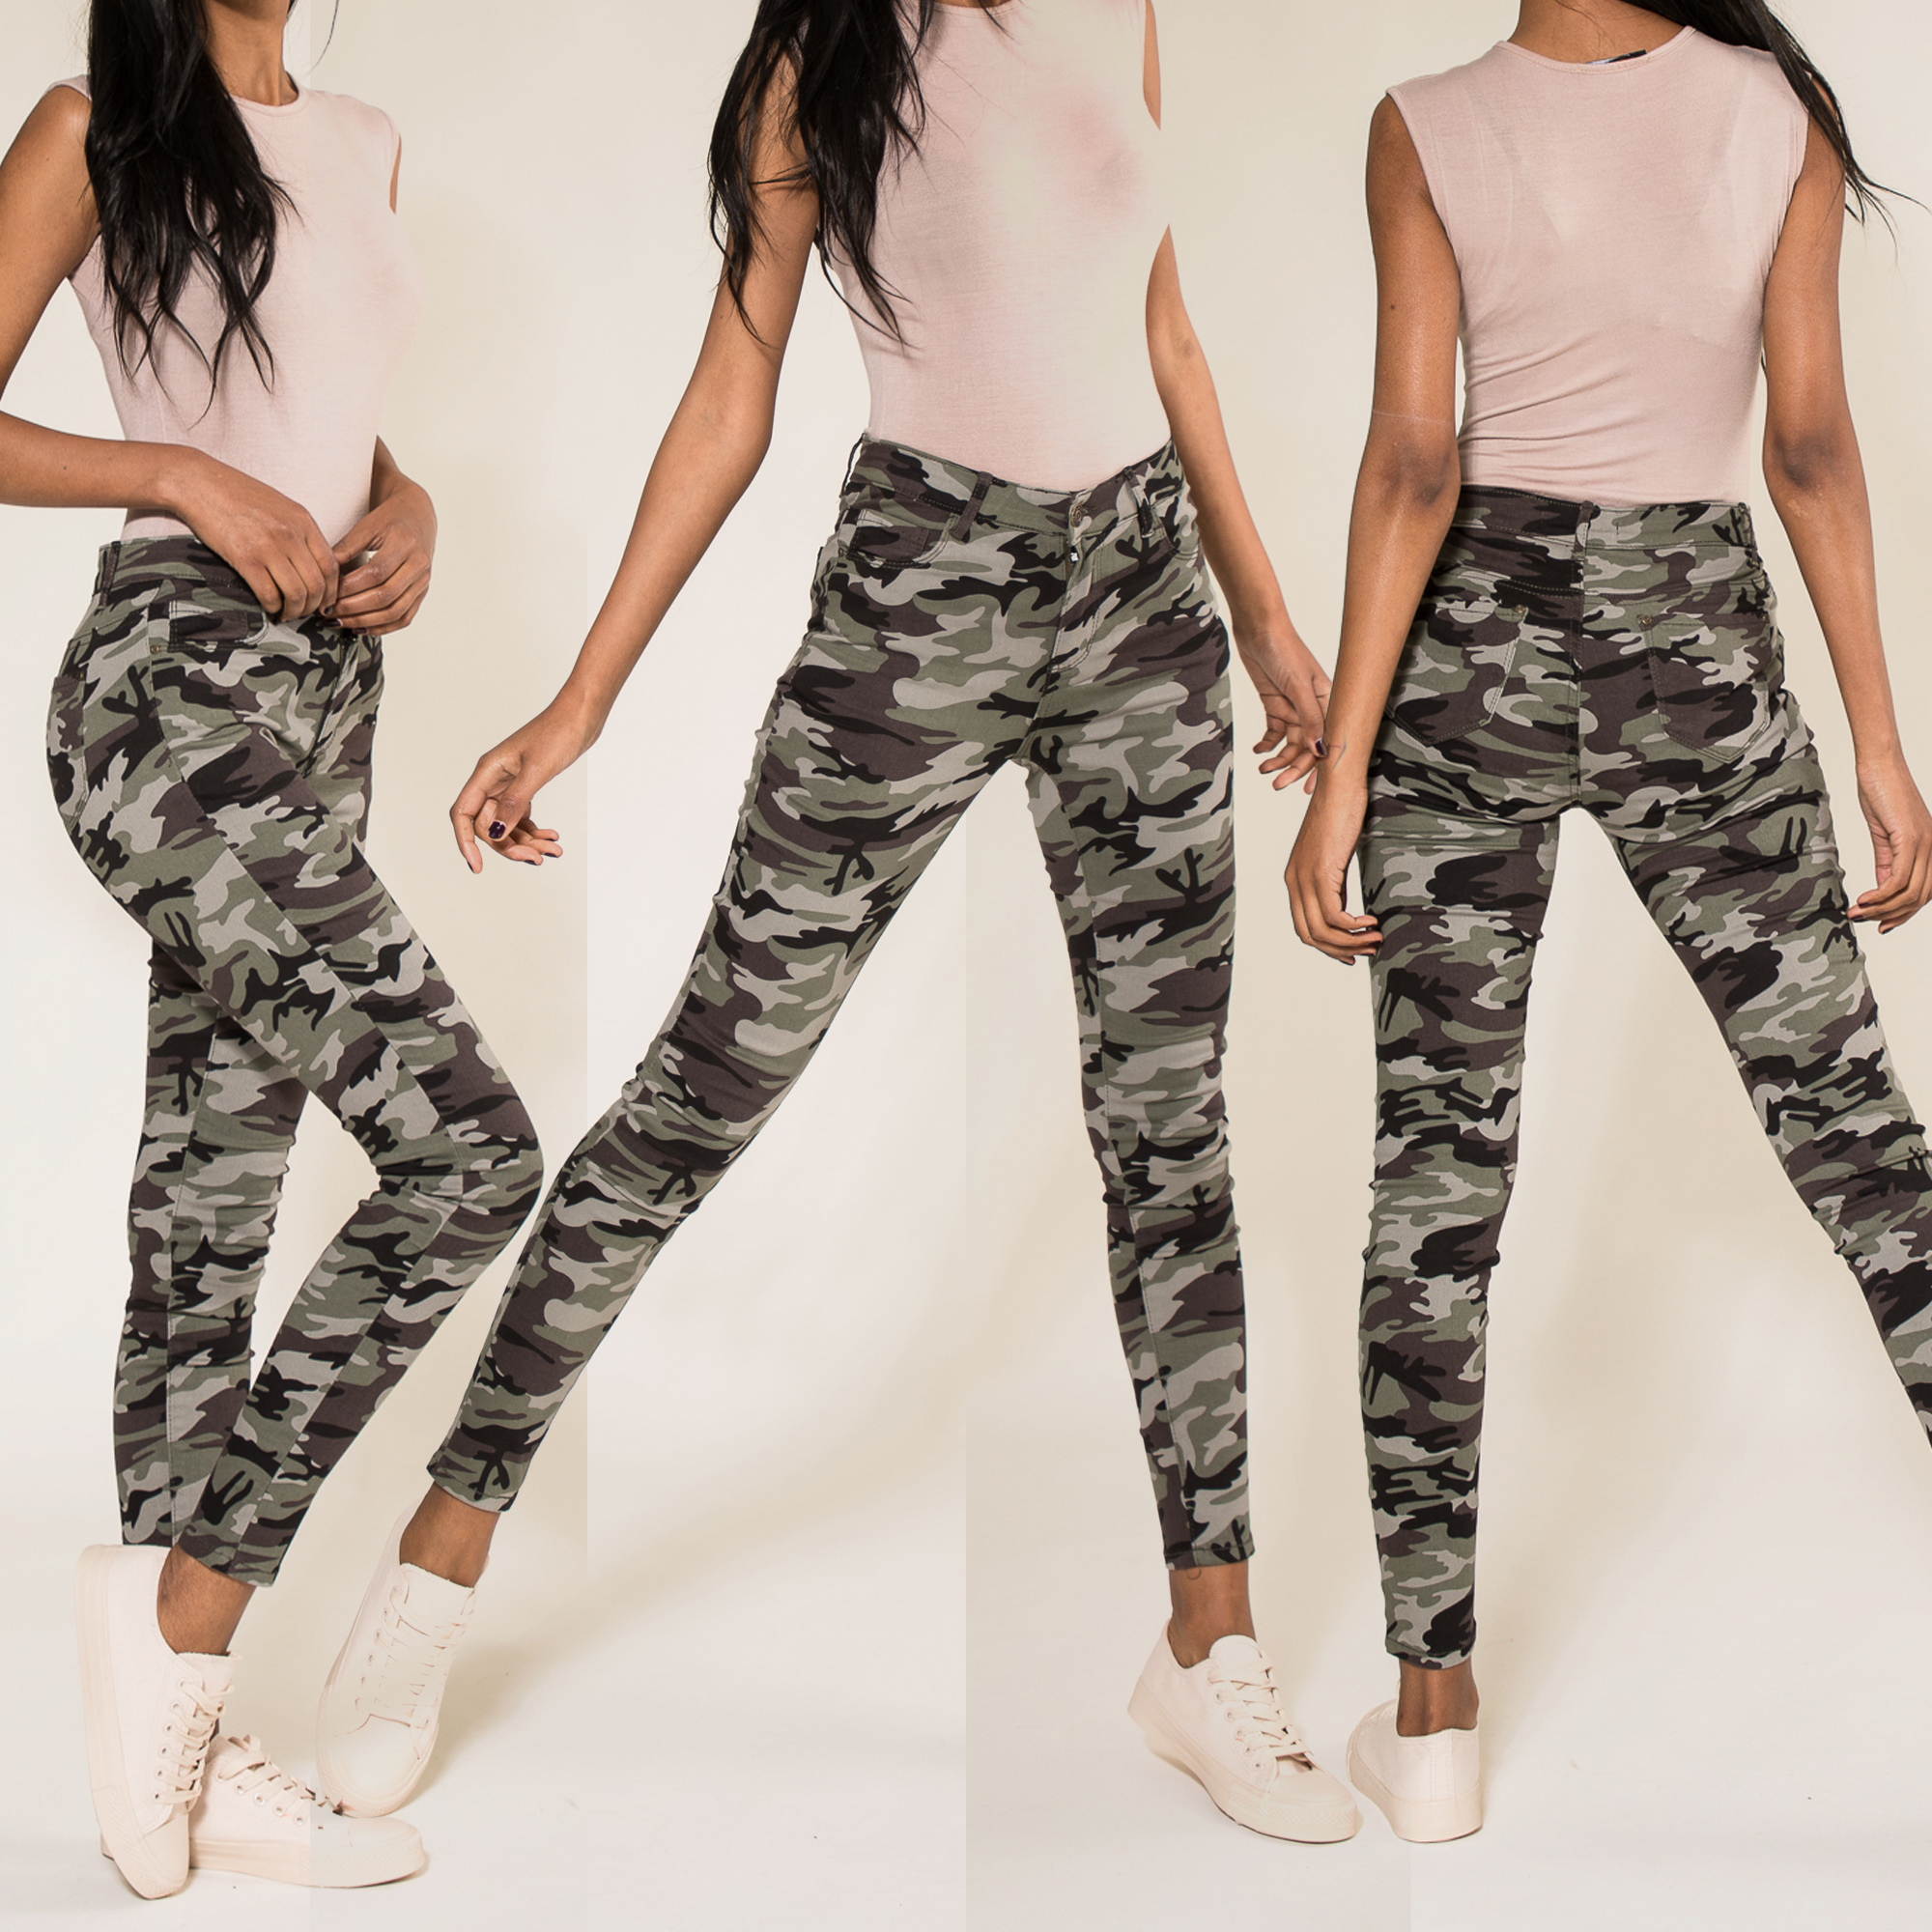 Womens Army Military Camouflage Skinny Stretch Trousers HOT ITEM